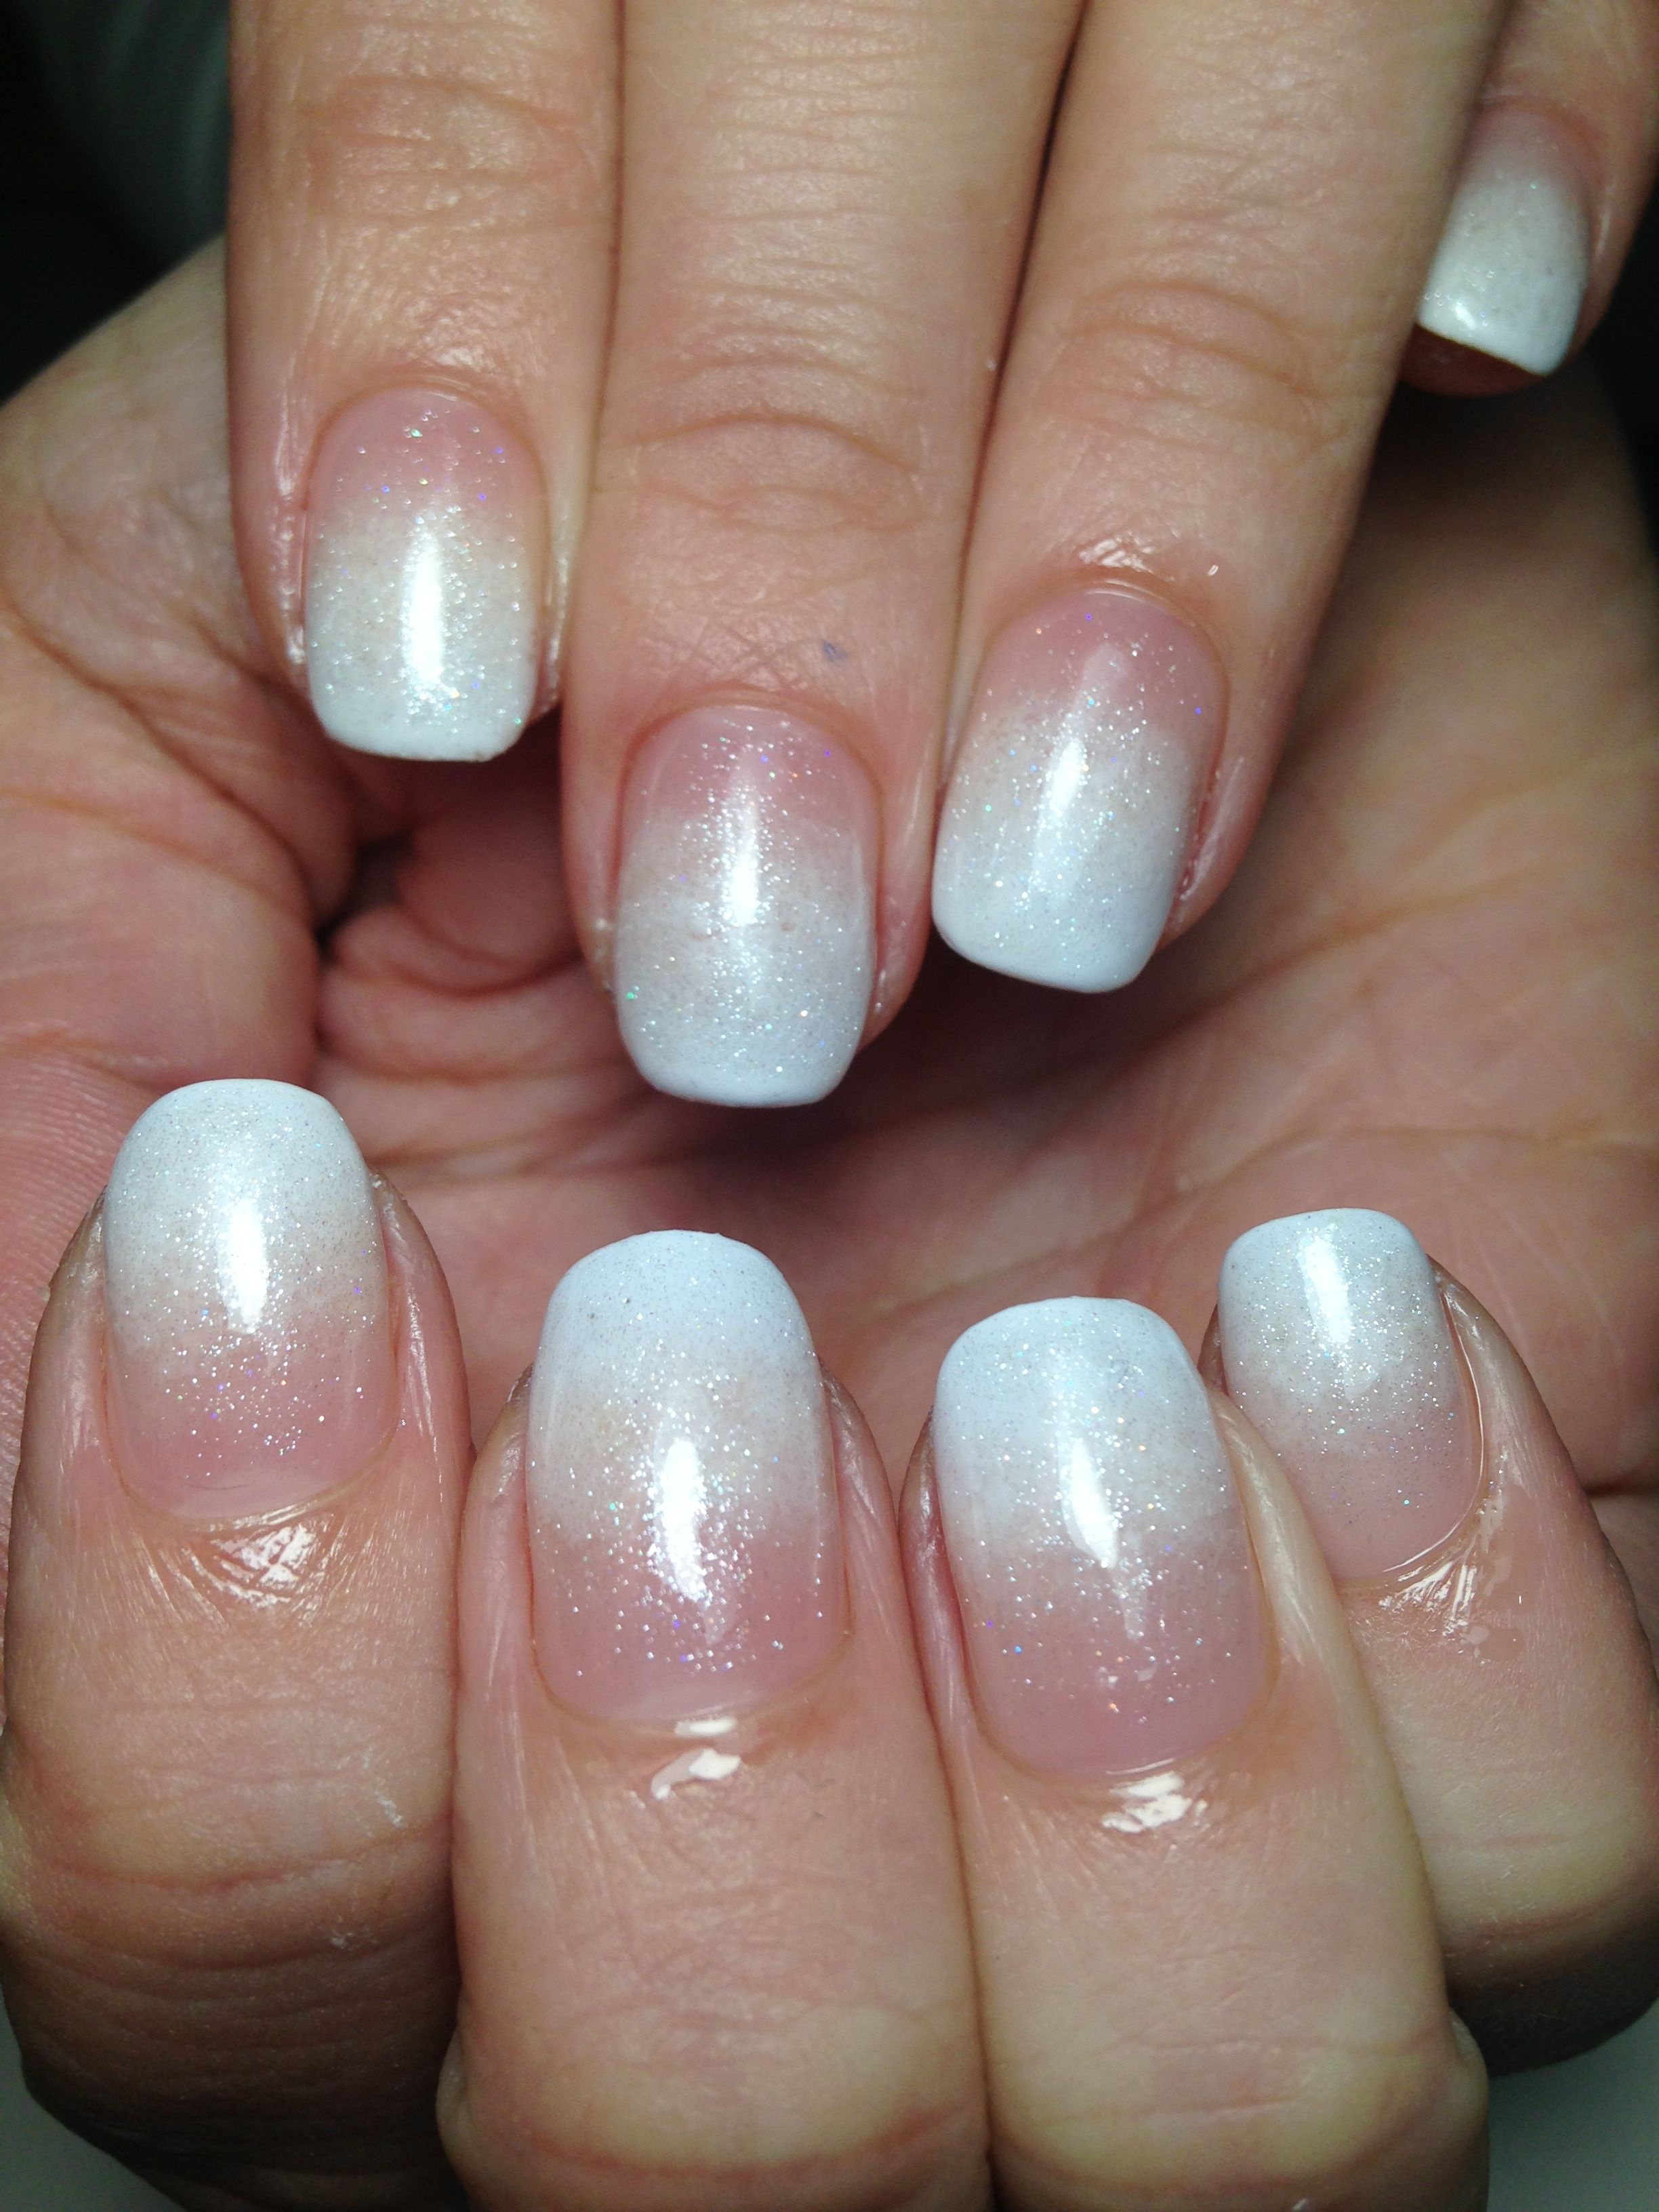 Whithe french ombre | My Bio Sculpture Gel Nails | Pinterest | Bio ...